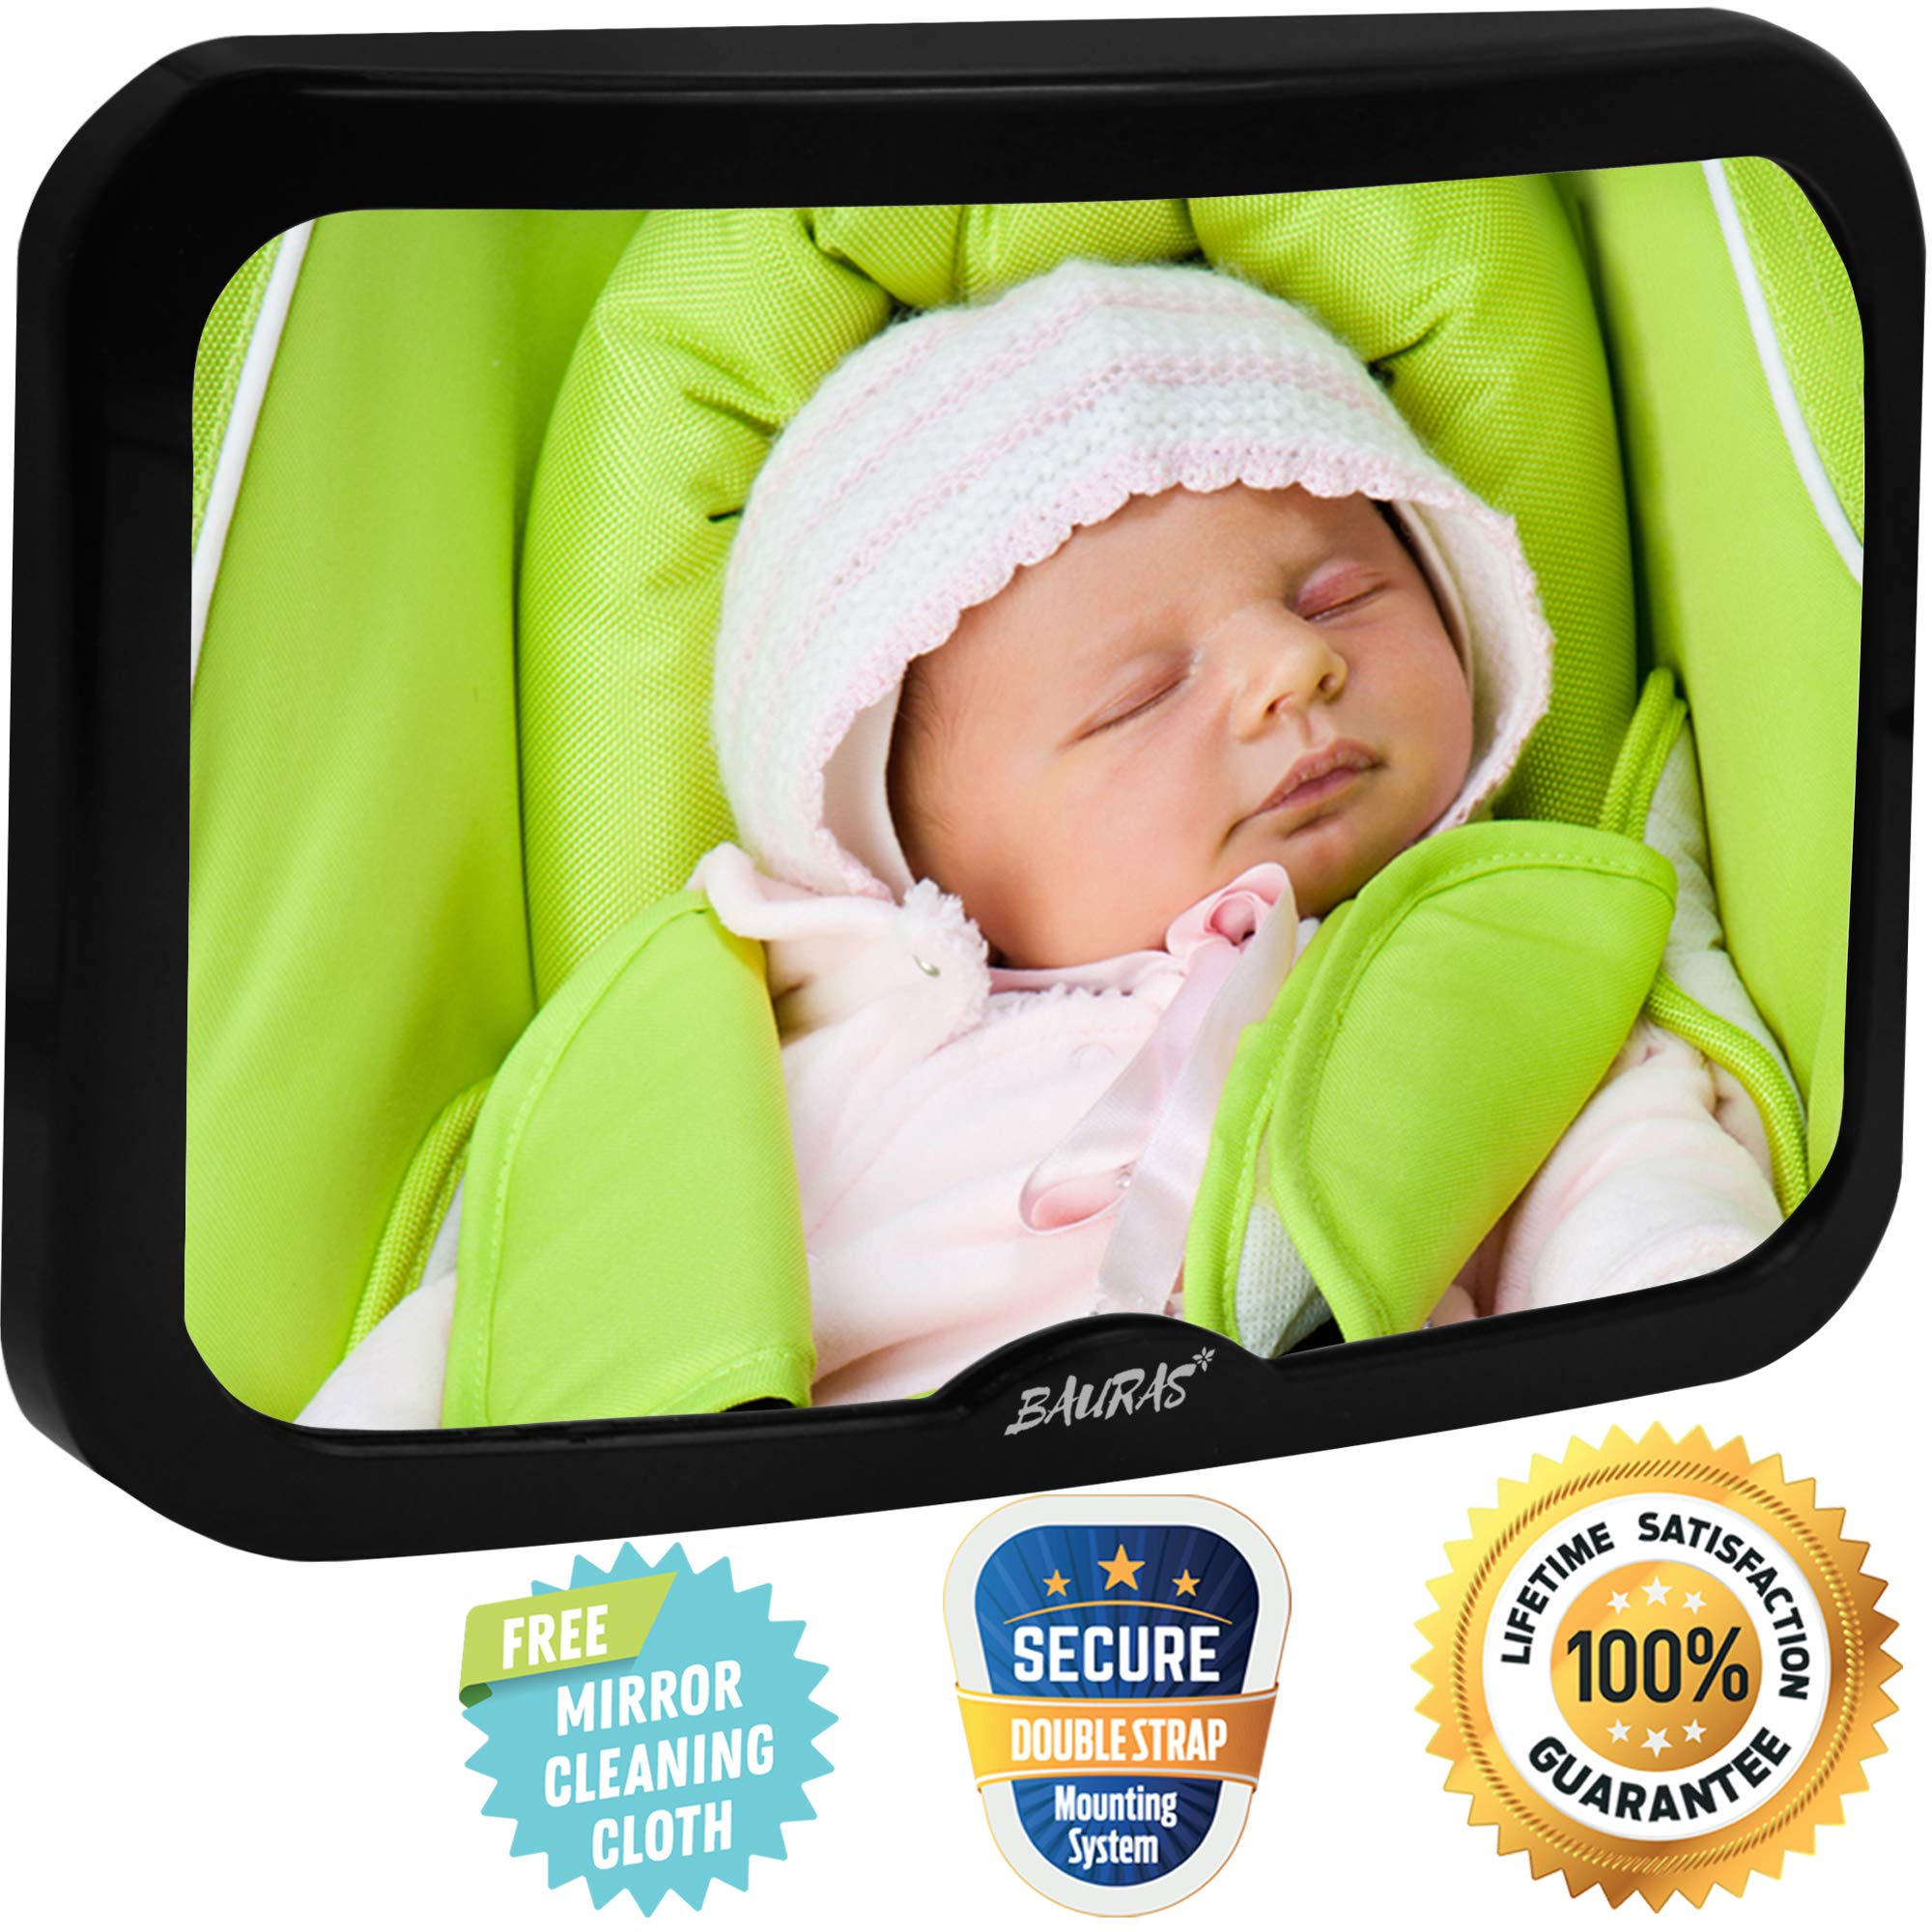 Baby Mirror for Car - Largest Backseat Mirror for Rear Facing Infant - Most Stable Shatterproof Newborn Accessories for Back Seat - Wide Crystal Clear View - Premium Quality - Safe Secure Crash Tested